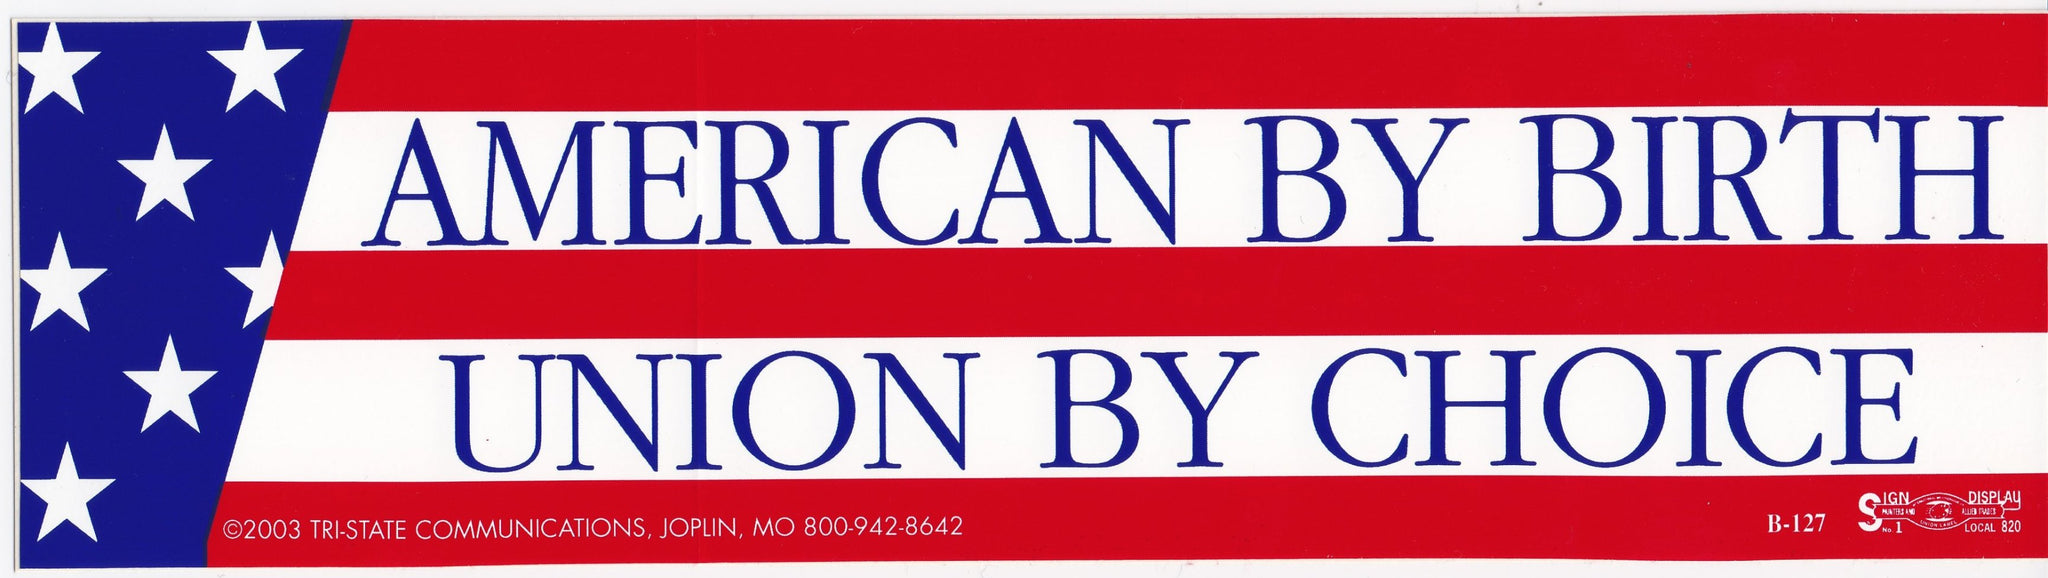 'American by Birth' Bumper Sticker #BP127